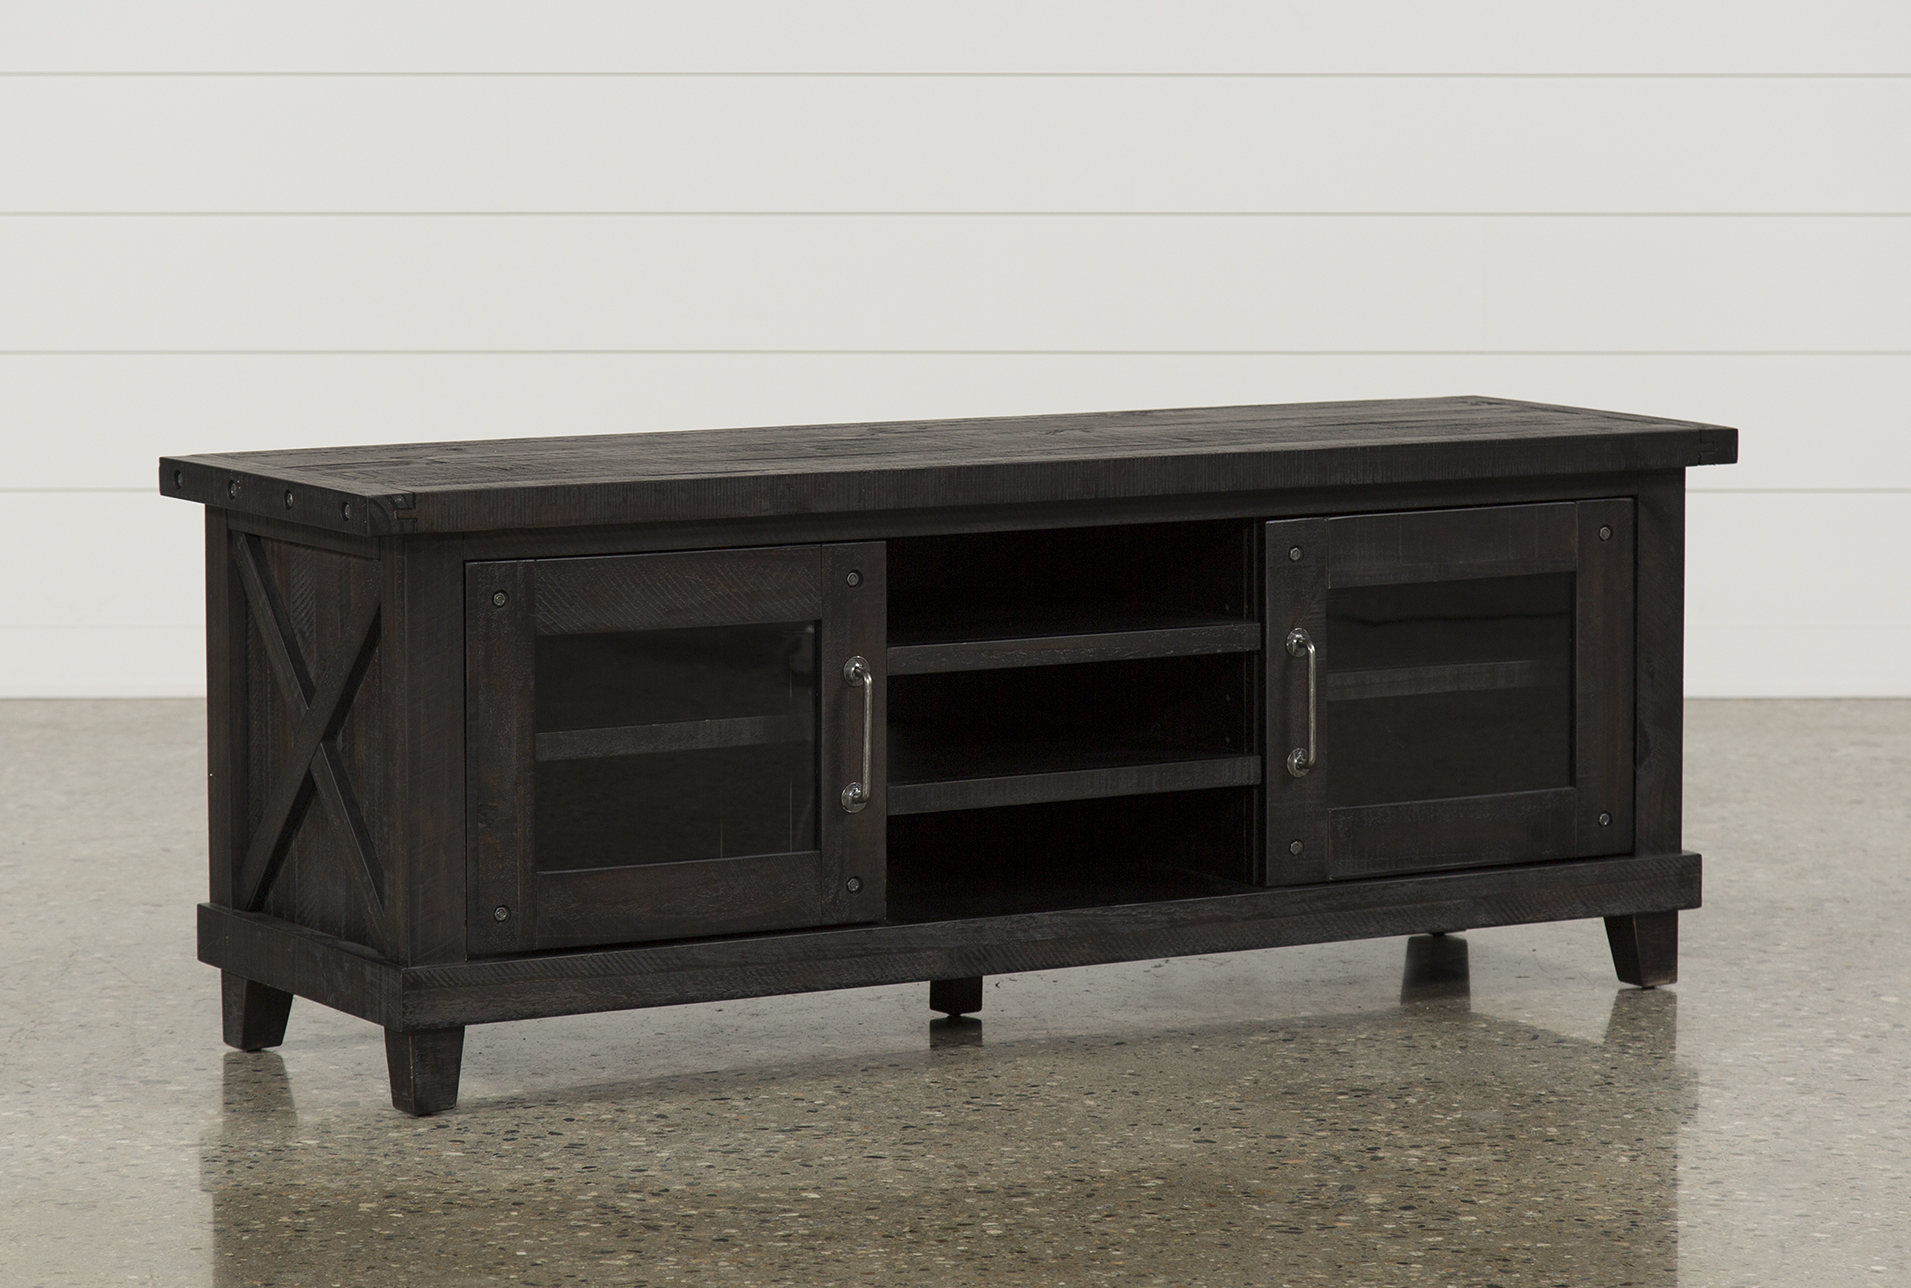 Jaxon 65 Inch TV Stand (Qty: 1) Has Been Successfully Added To Your Cart.